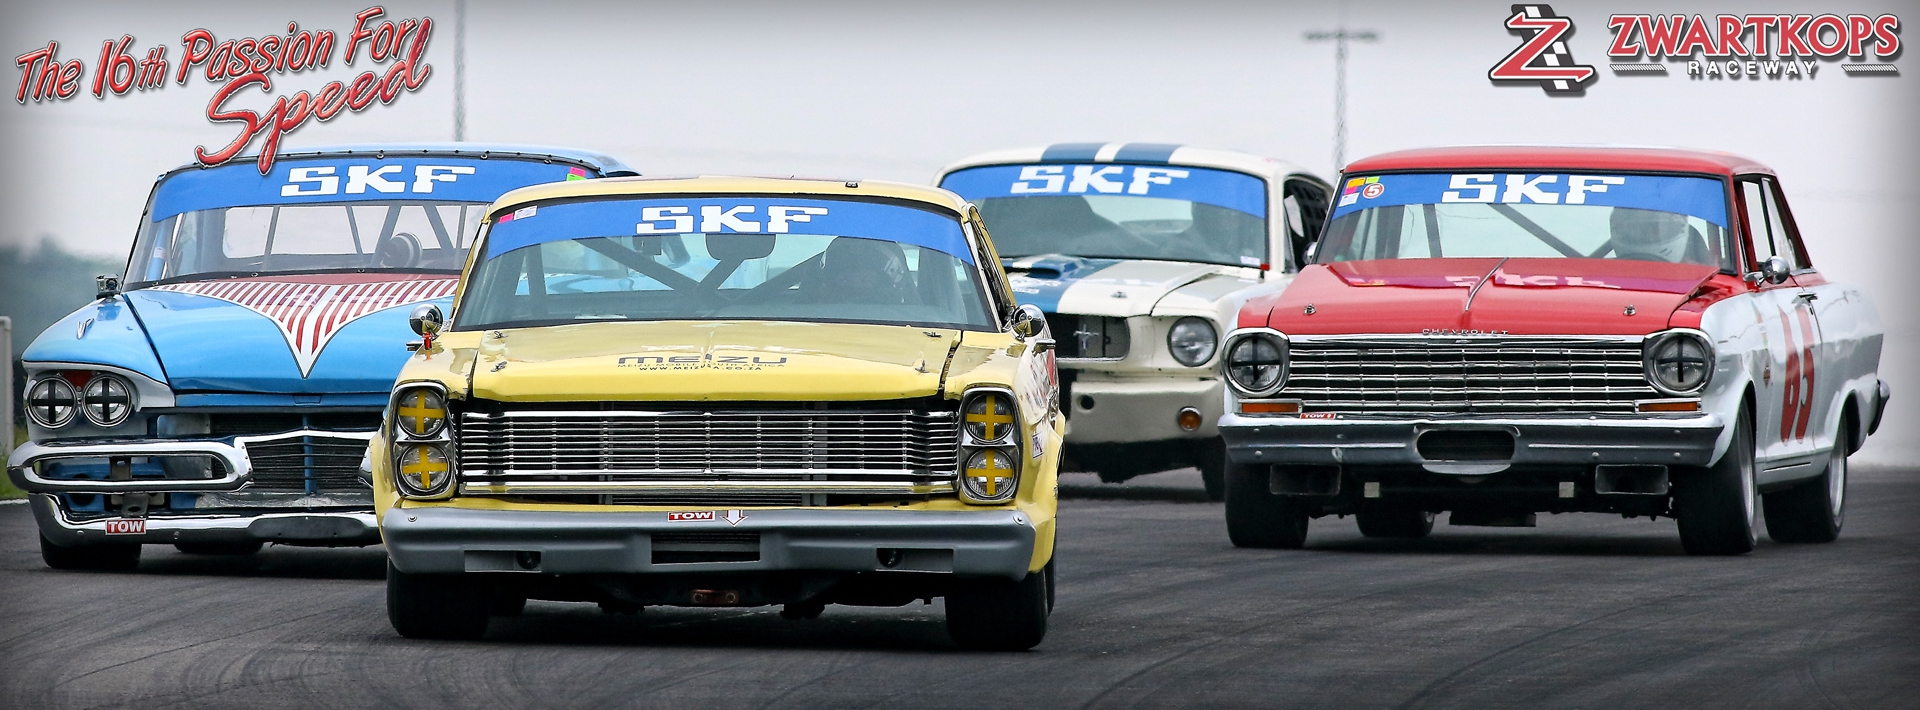 Historic Racing entertains large Zwartkops crowd - Passion for Speed 2017